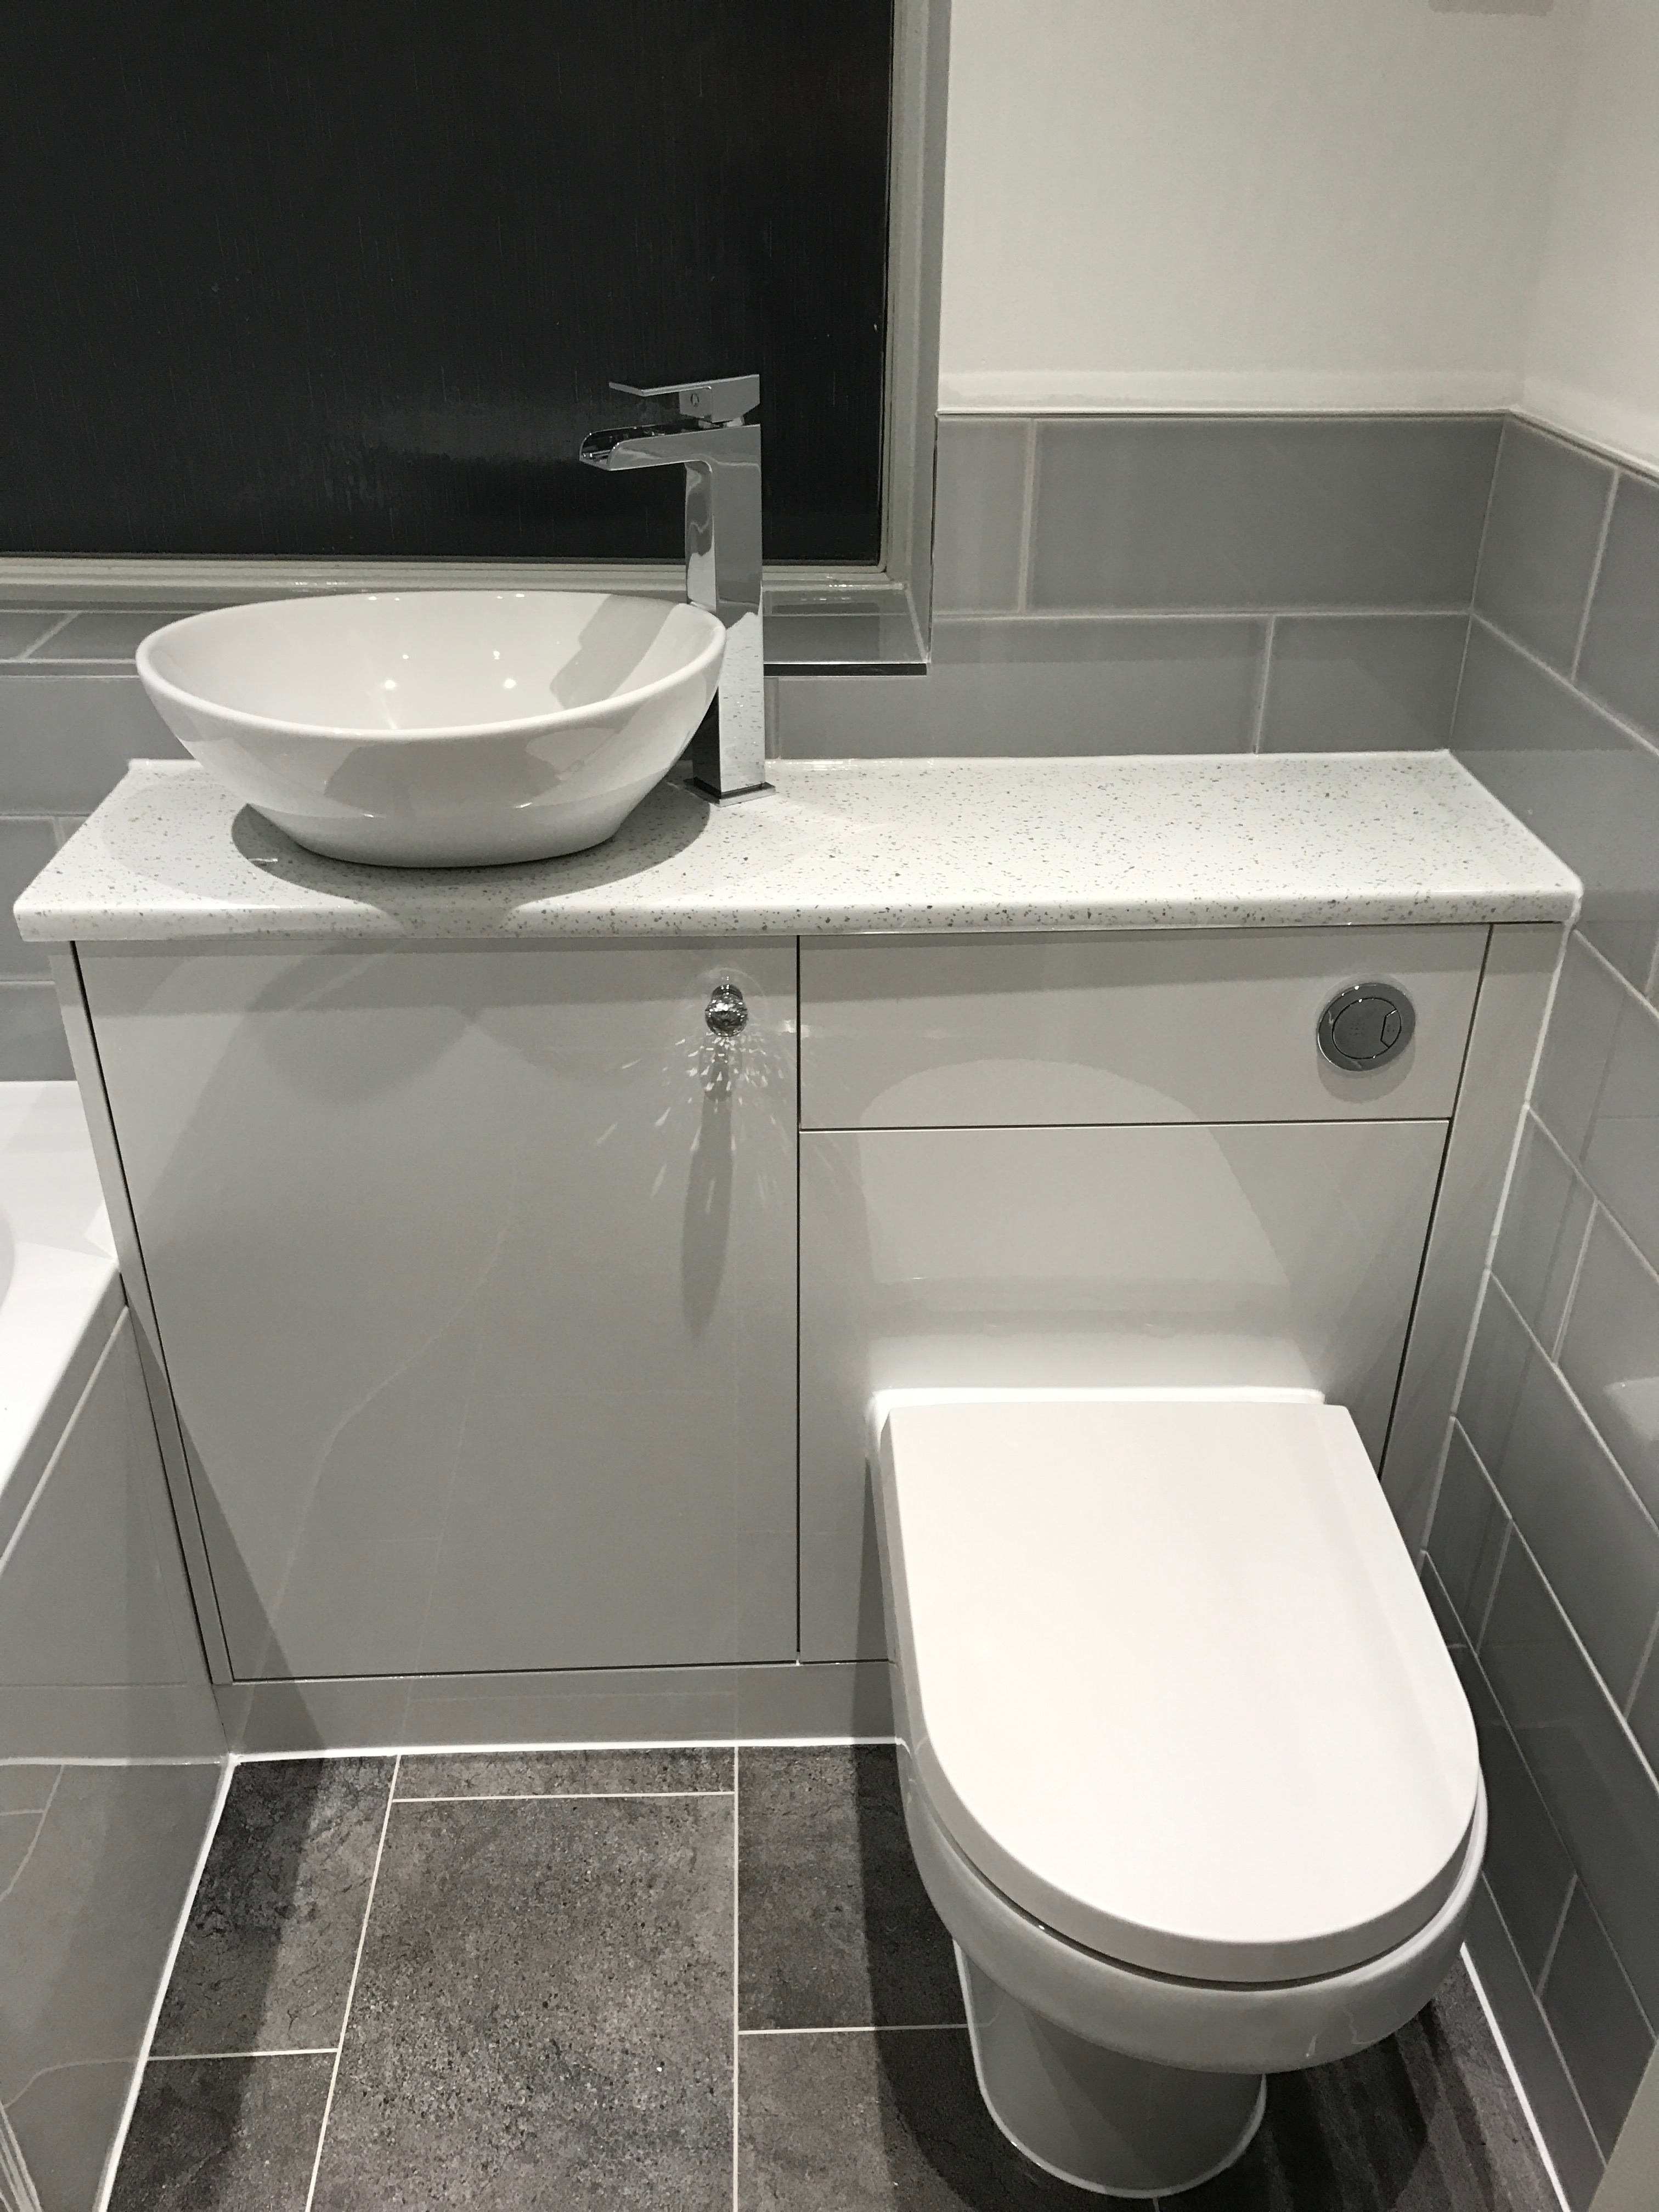 Bathroom Project Bedfordshire - TNM Property Services0603